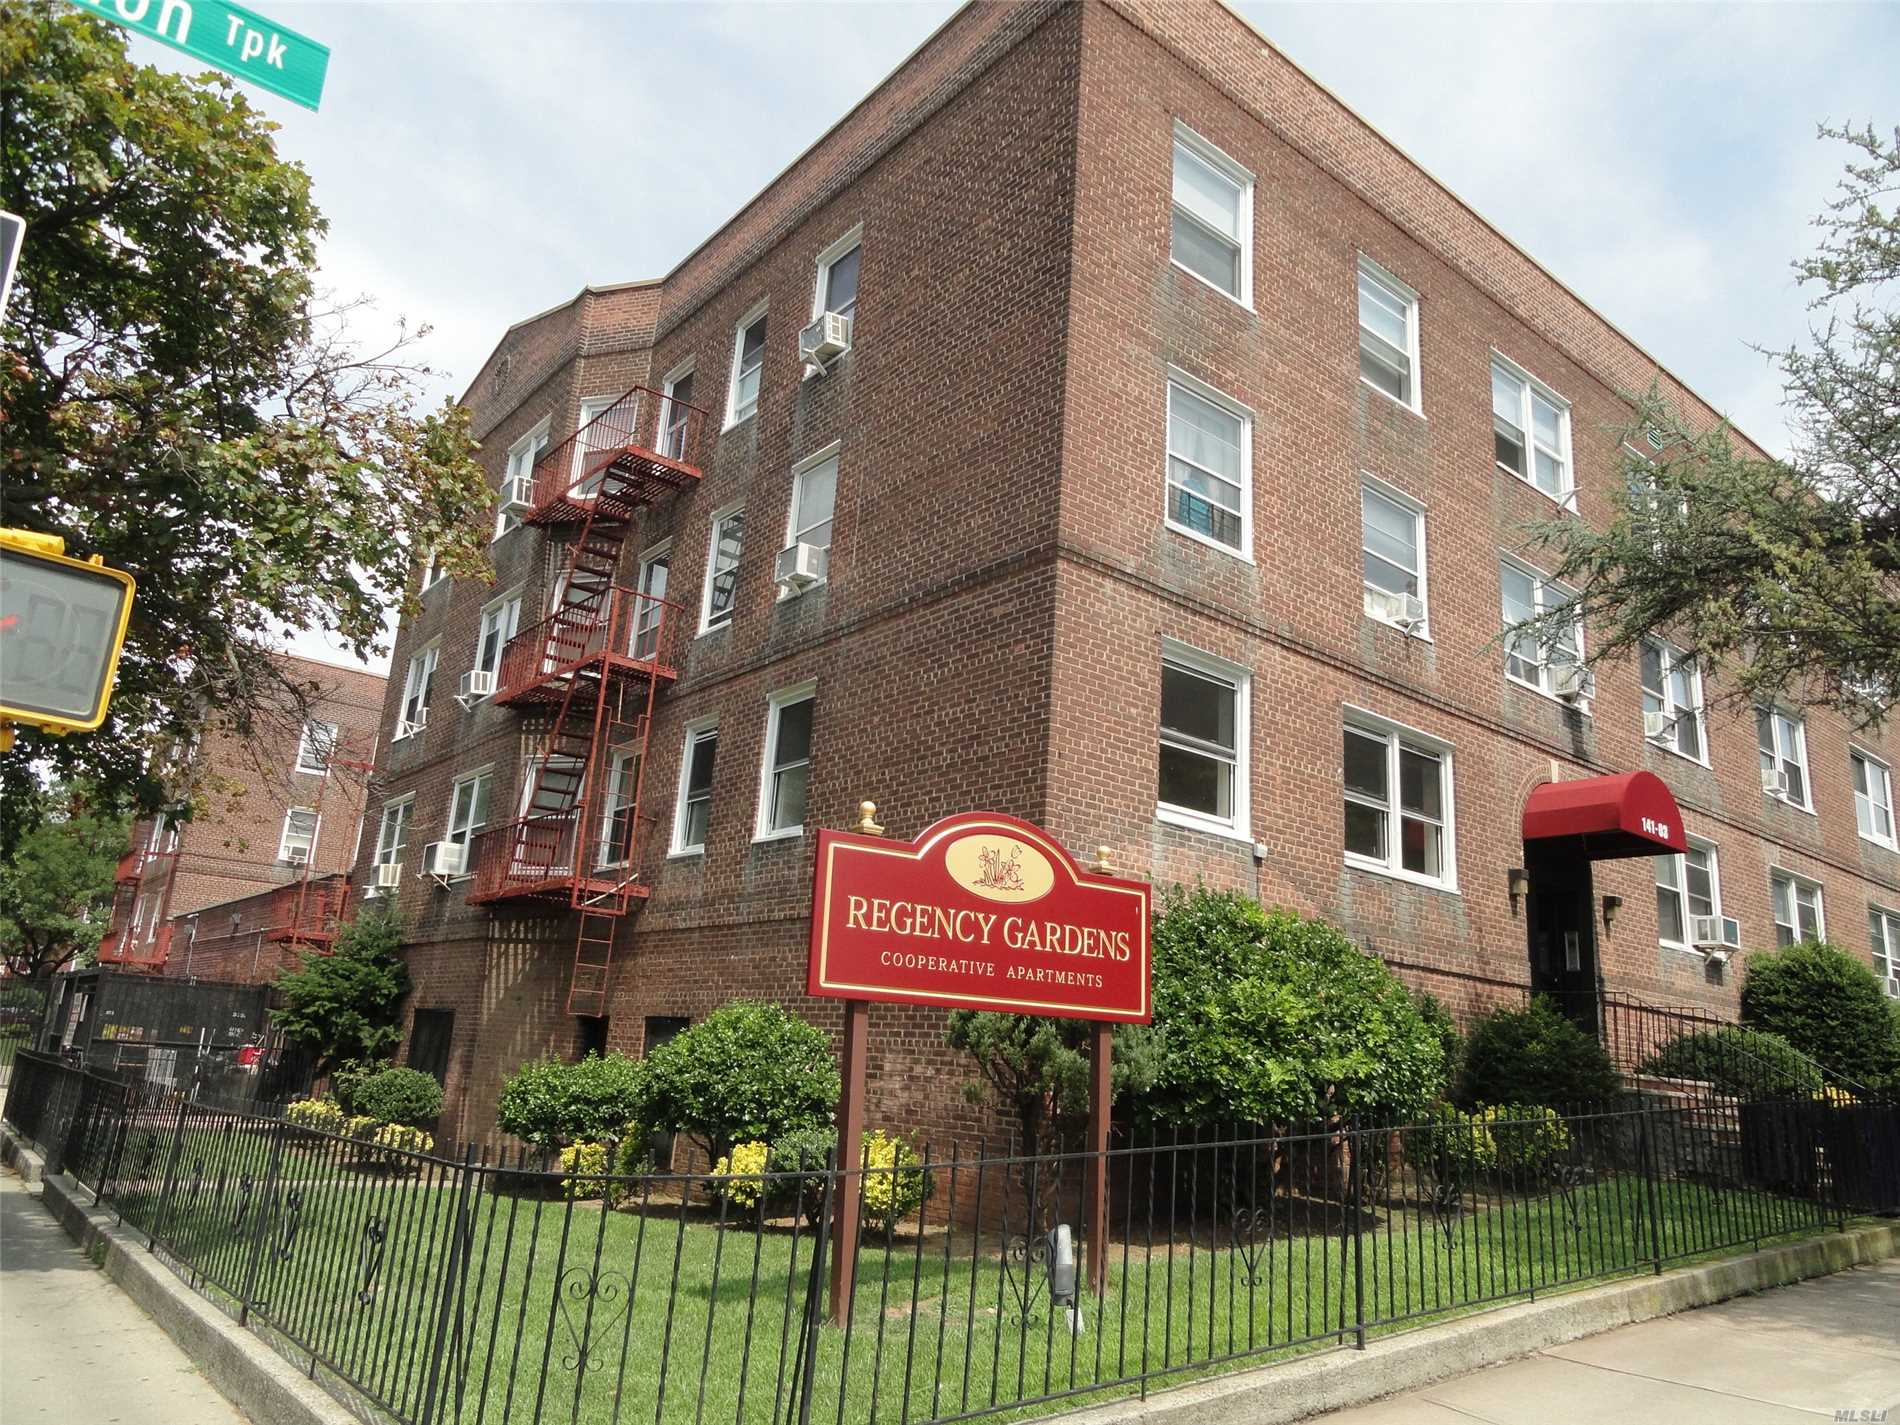 *Investor Friendly Buy It And Rented Today 100% * In Our Regency Gardens Located In Kew Gardens Hills / Flushing, Intersection Of Union Tpke & Main Street I Have A Large 3Br On A 2nd Floor Of A Three Story Gardens Complex Walking Distance To The Number E And F Train 15 Minutes To Manhattan. Mq-1 Bus To The City In Front Of The Building. Near To St John's University And Queens College, 15 Minutes For Jfk And Laguardia Airports And Major Hospitals Minutes Away Including New York Hospitals.